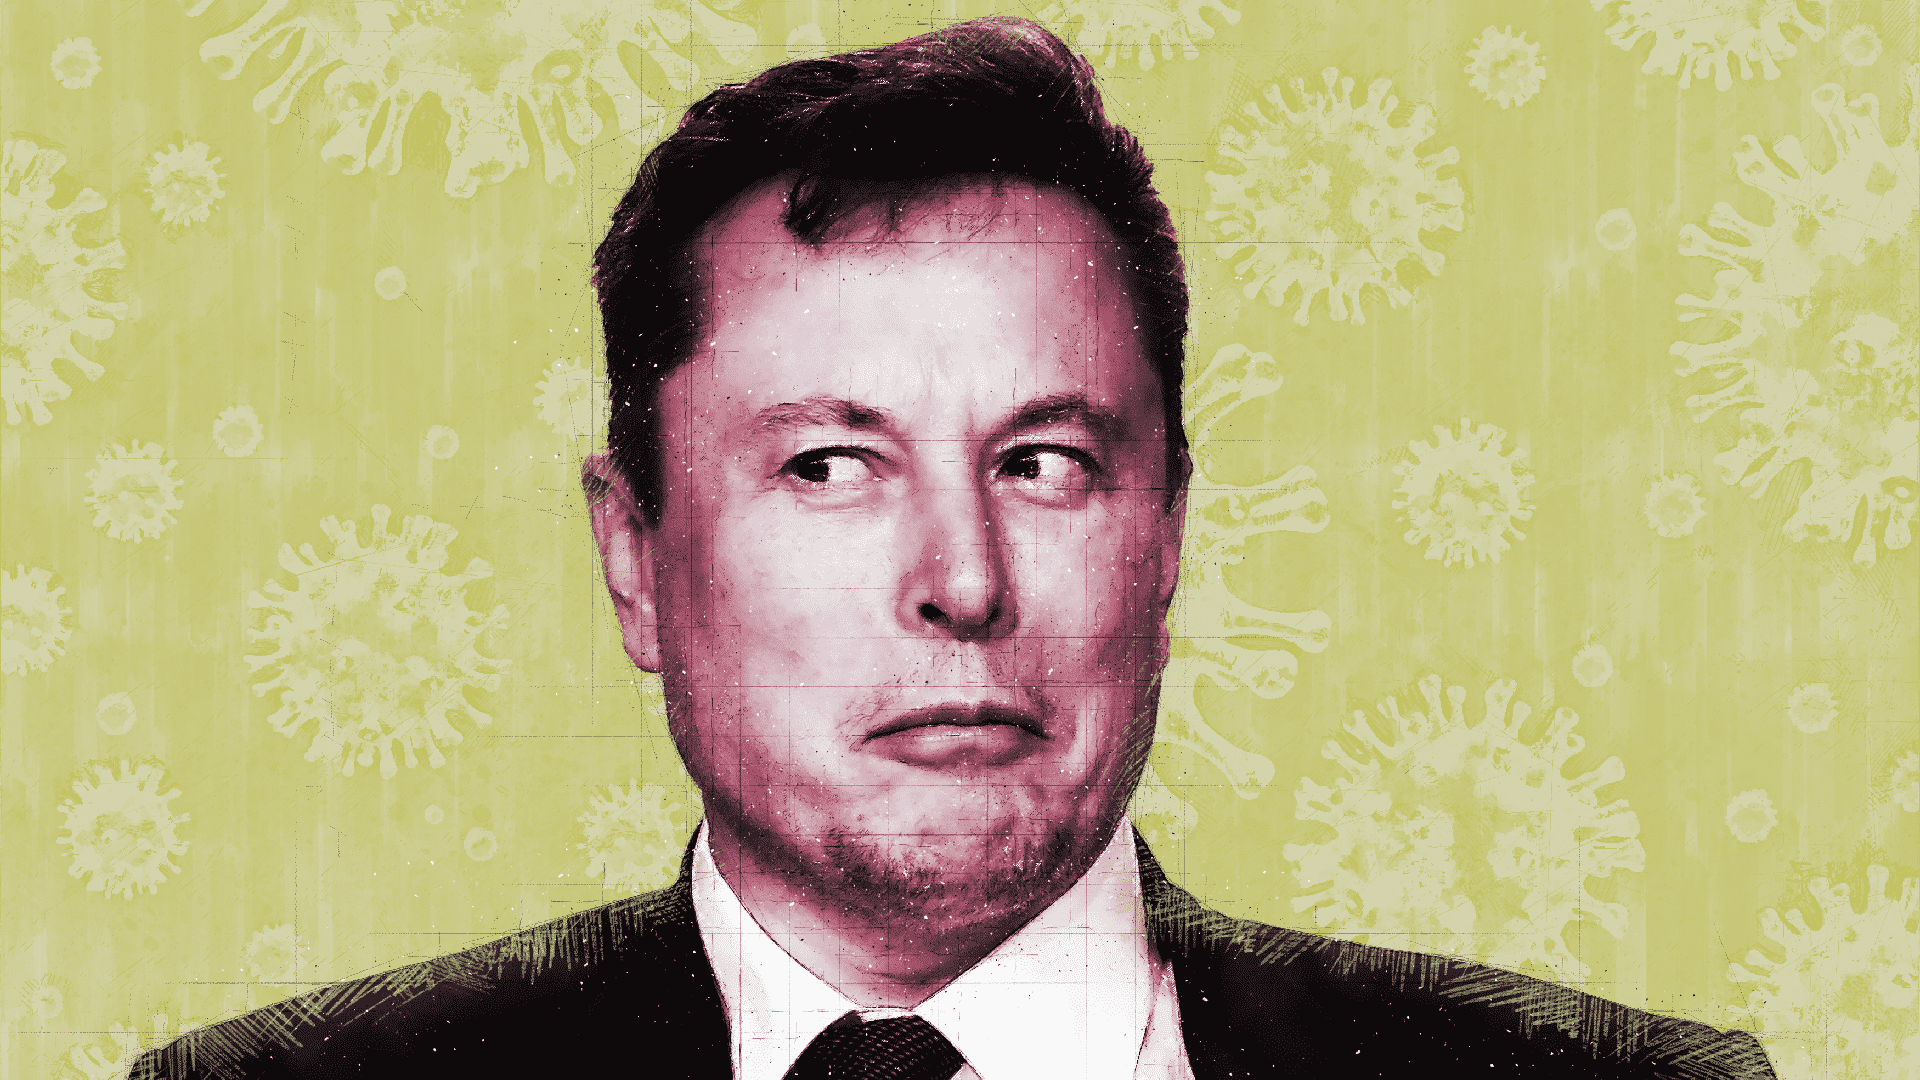 Elon Musk Is A Danger To The Public.